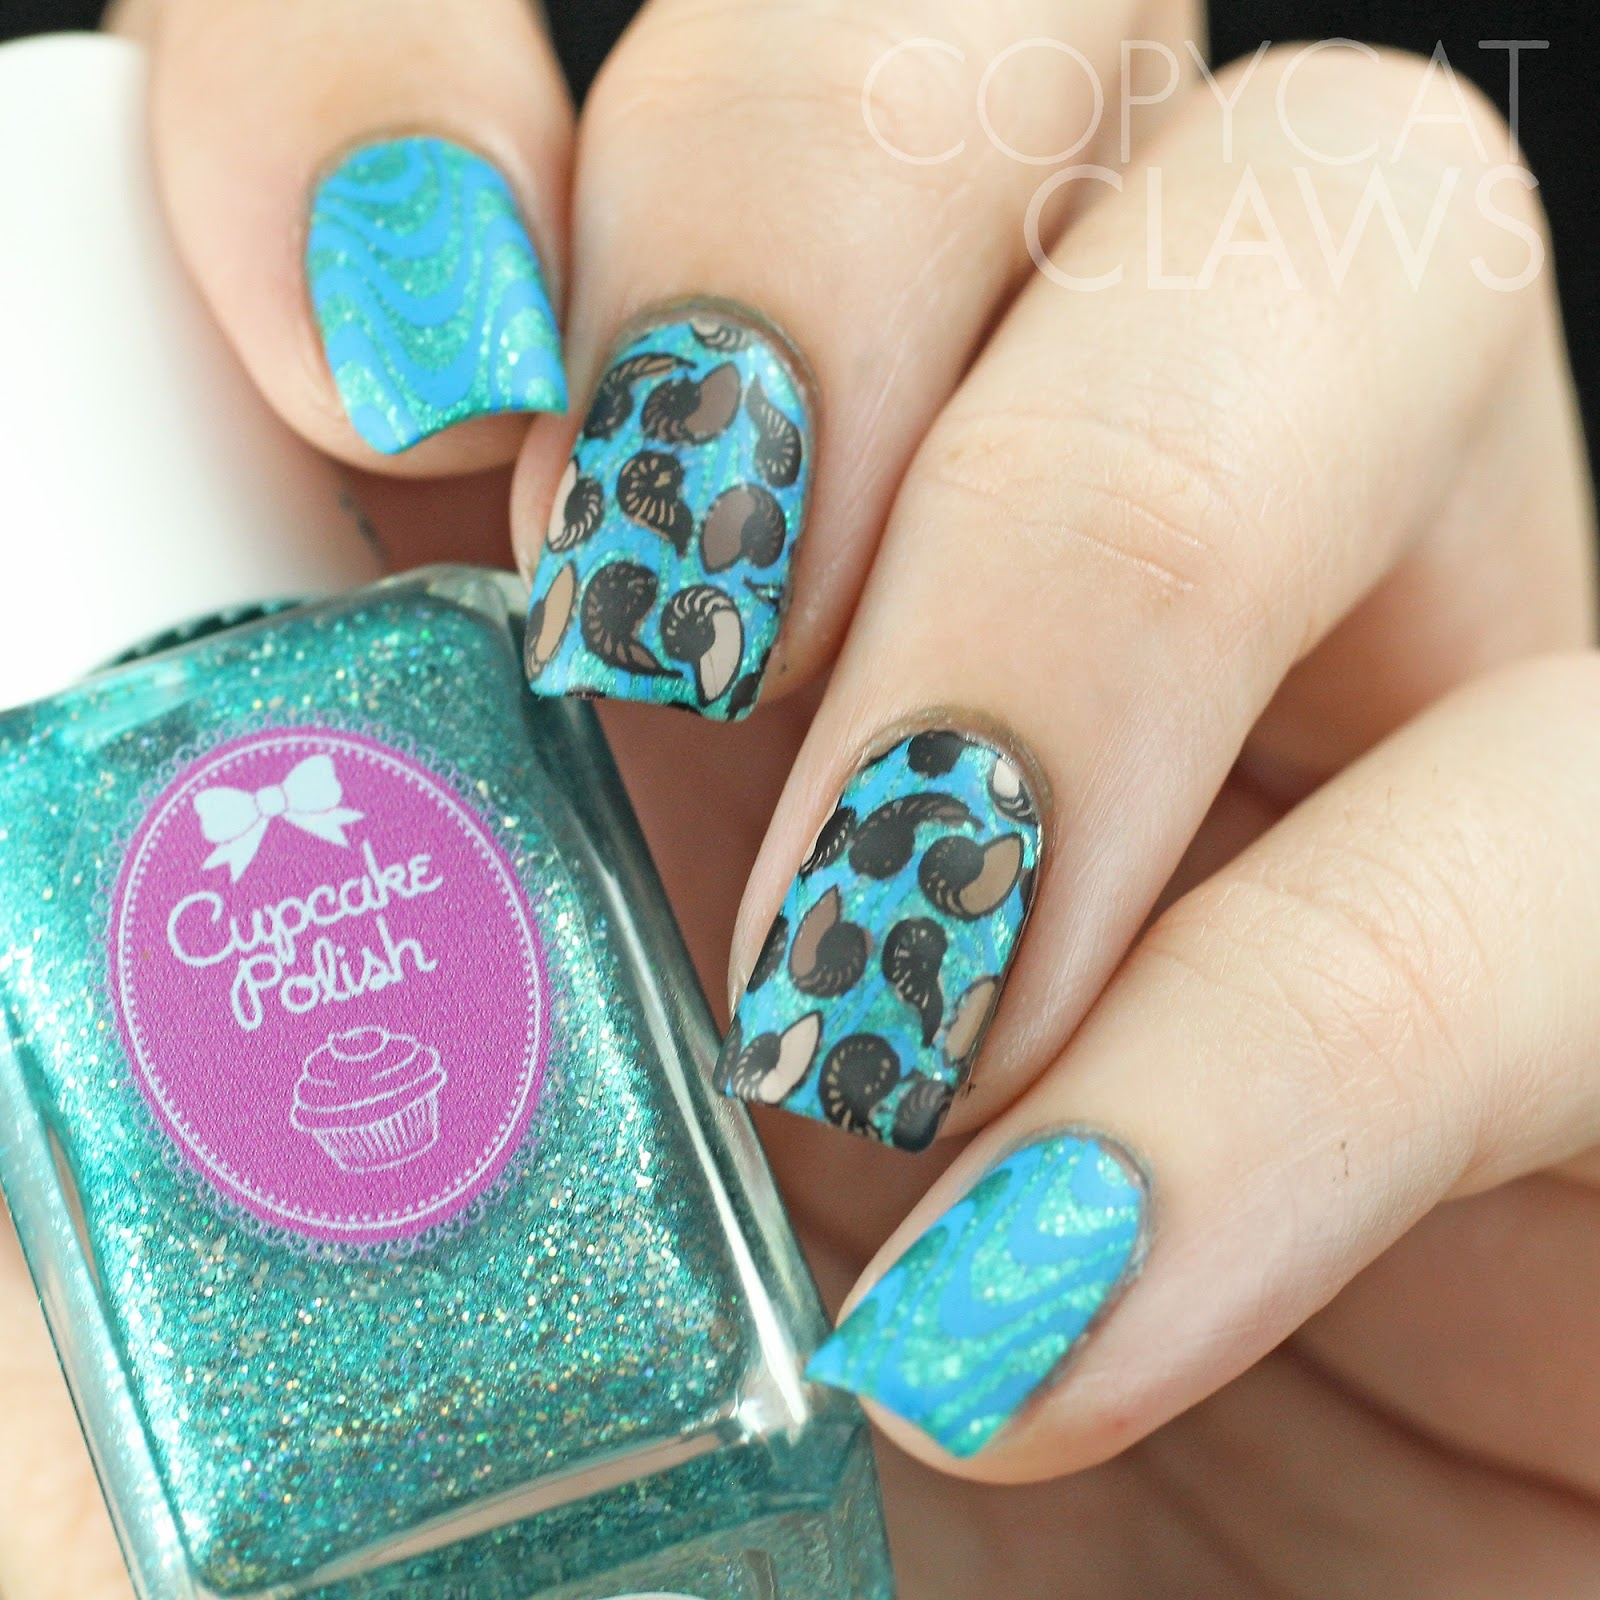 Copycat Claws: All The Light We Cannot See Nail Art